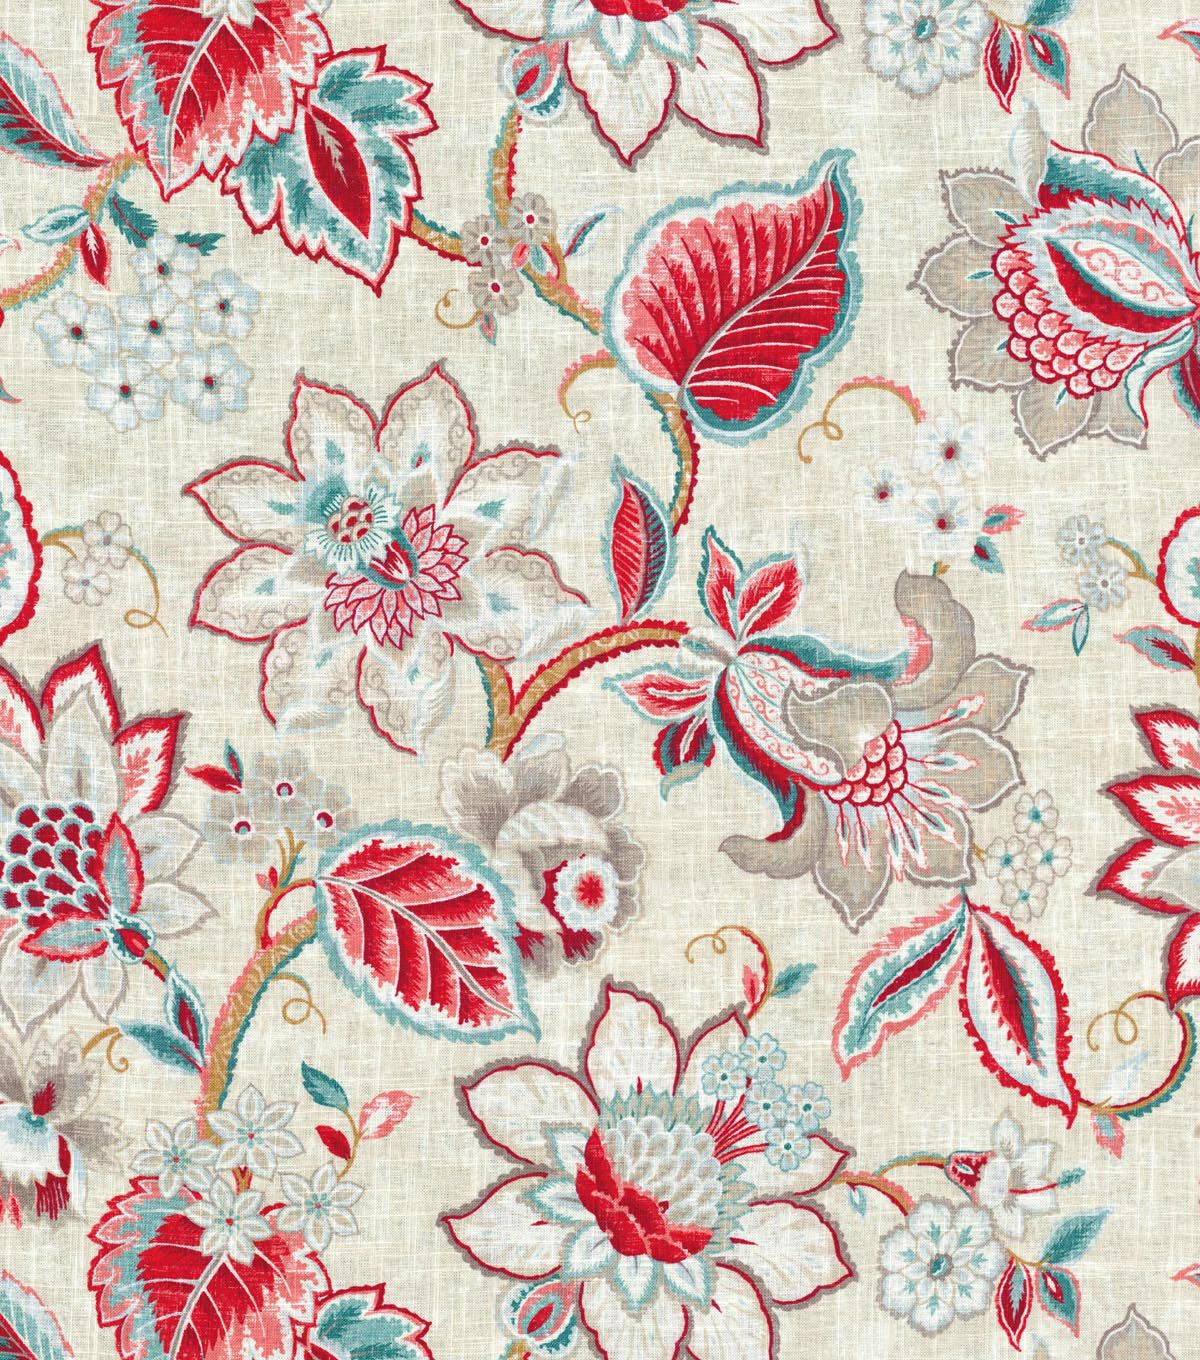 Waverly Upholstery Fabric 54 Floral Fresh Strawberry